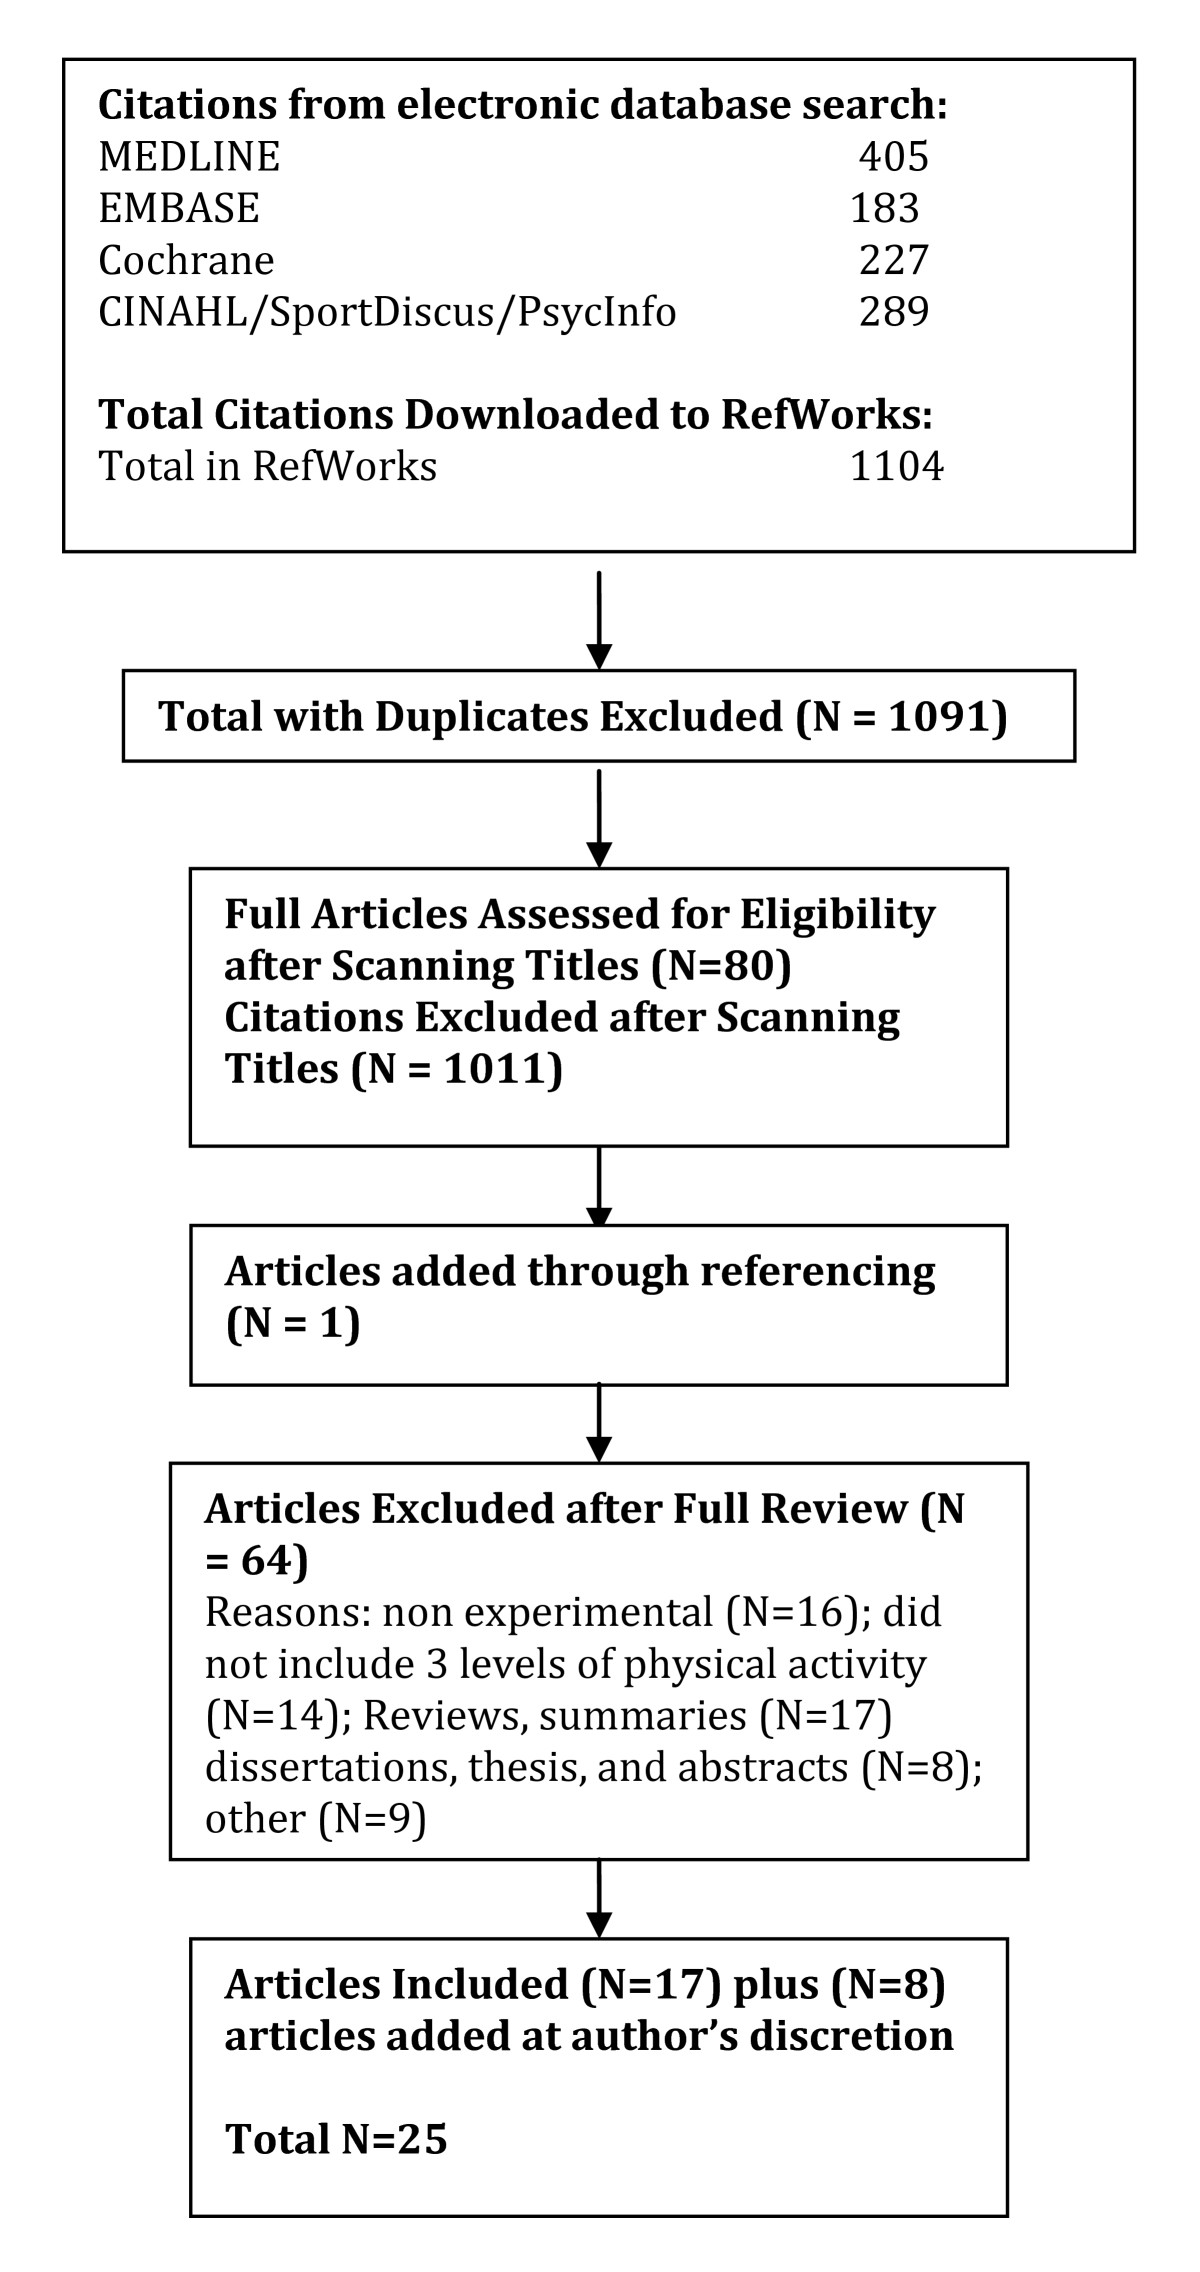 http://static-content.springer.com/image/art%3A10.1186%2F1479-5868-7-39/MediaObjects/12966_2009_Article_345_Fig5_HTML.jpg